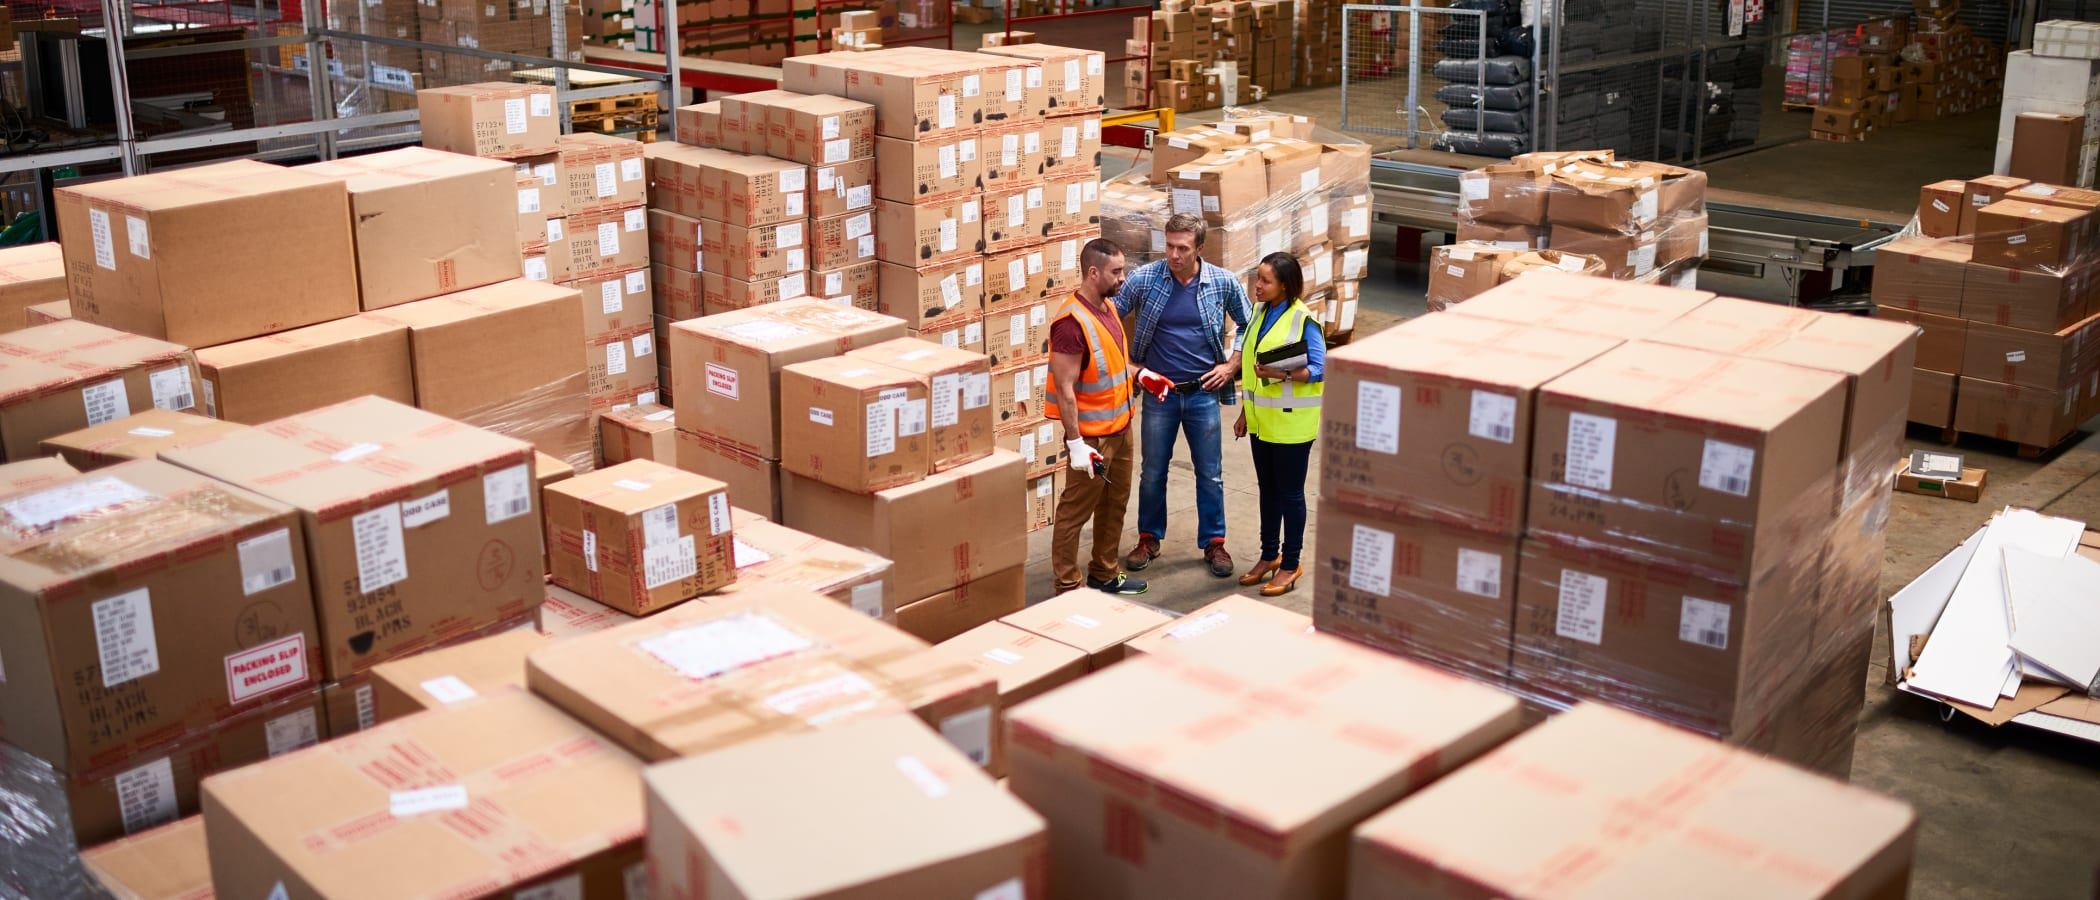 Finding and Managing Warehouse Workers Is 'In-the-Trenches' HR